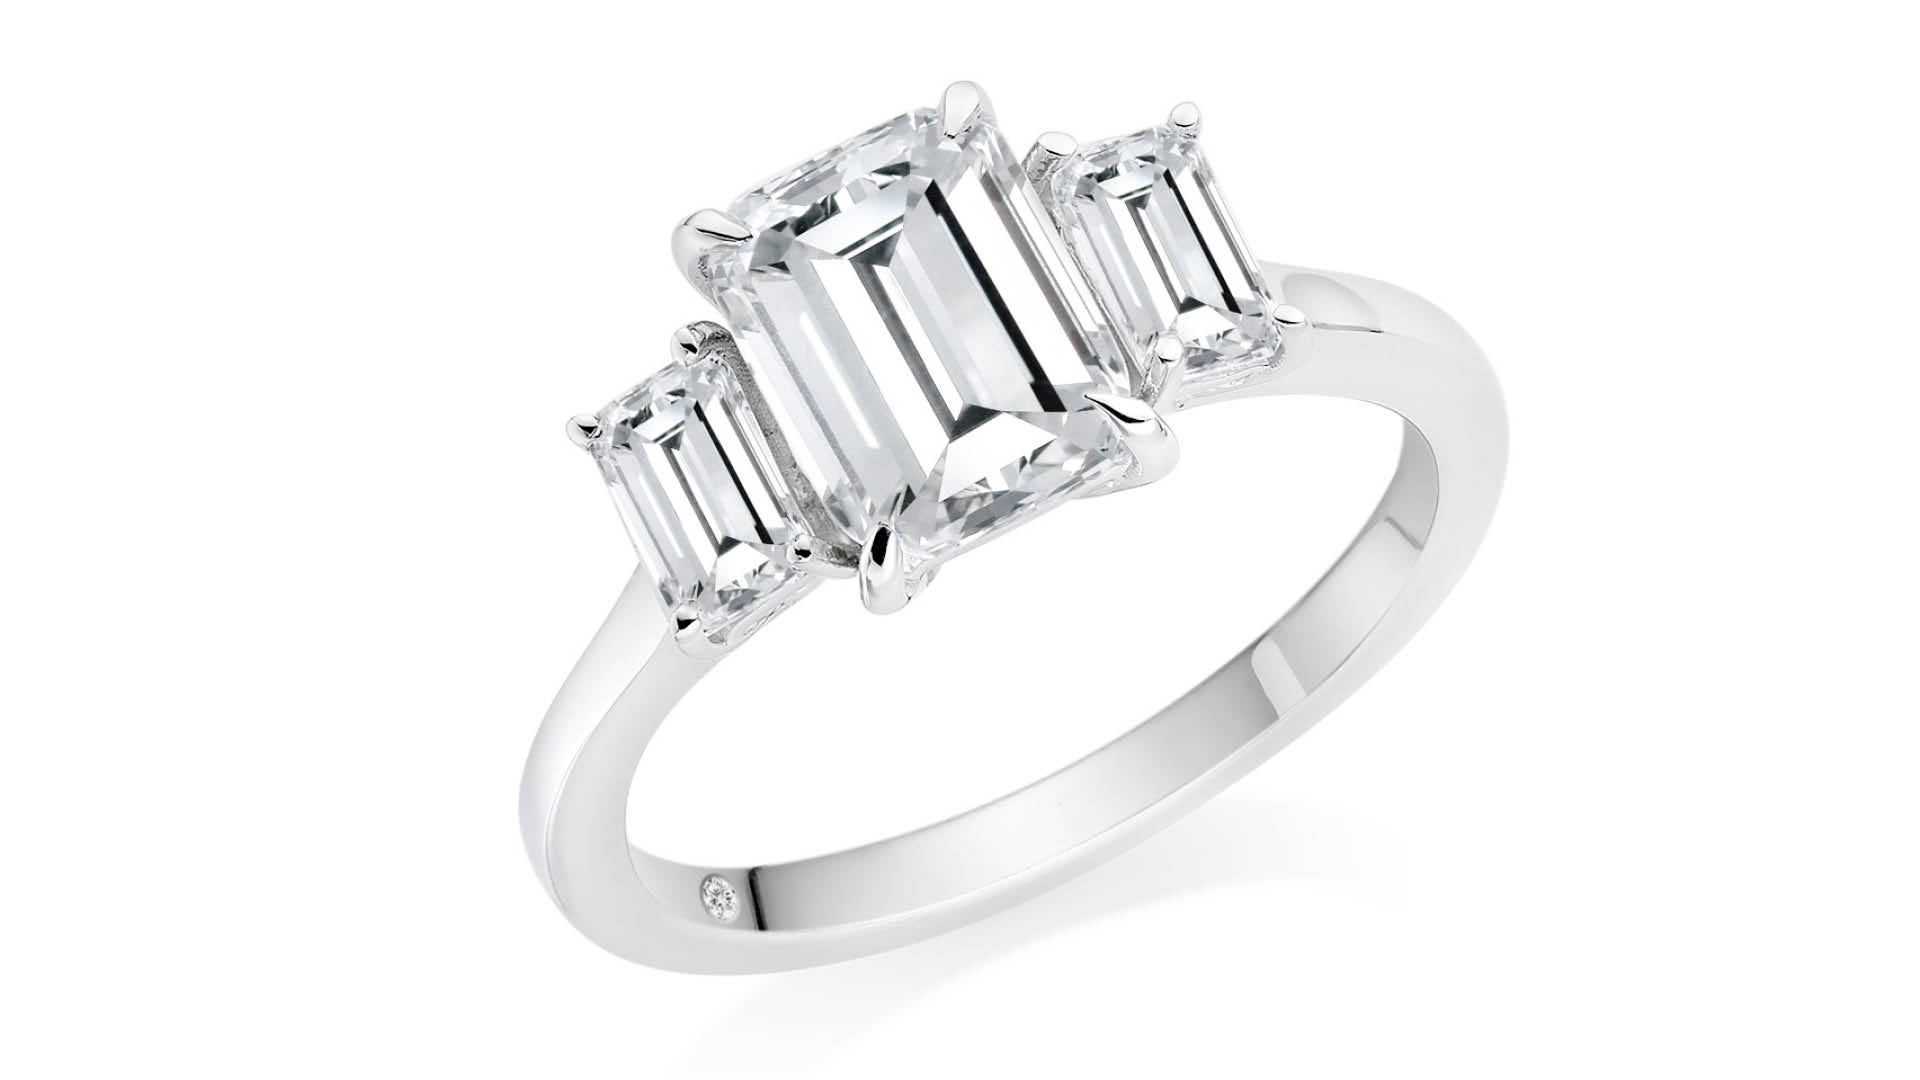 Fergus James Emerald Cut Engagement Ring Dubai